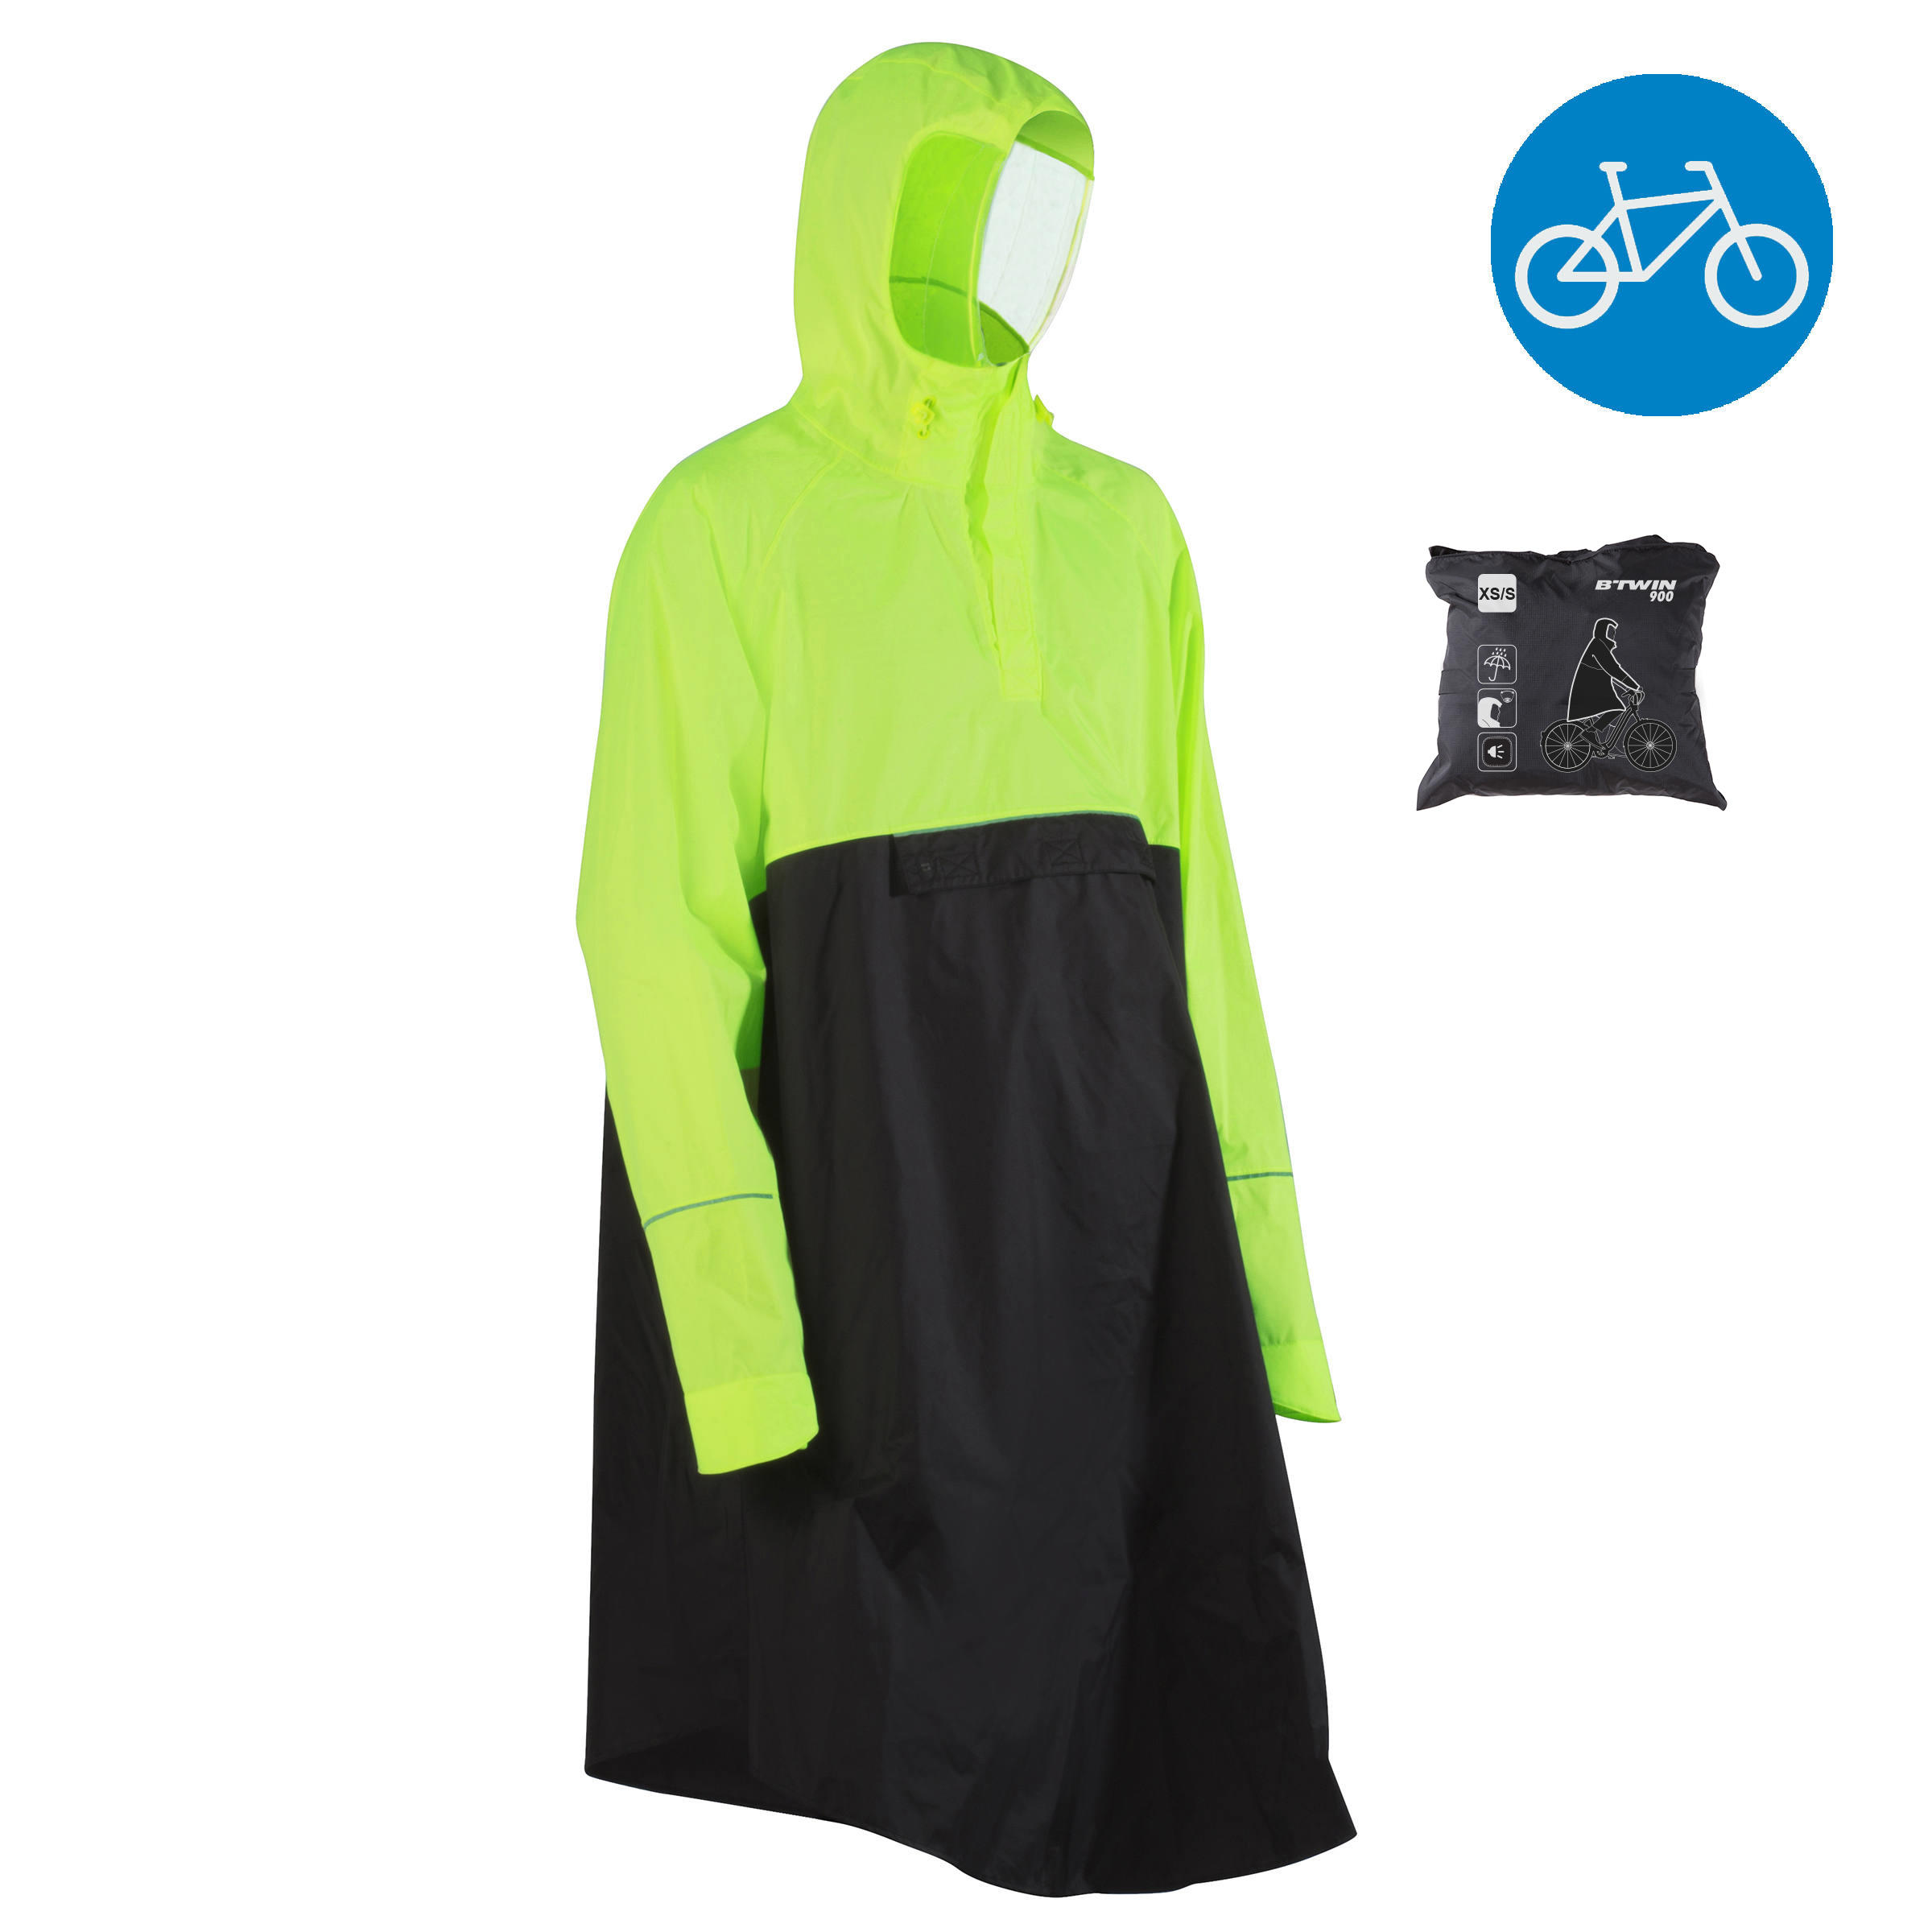 900 Cycling Rain Poncho - Neon Yellow / Black